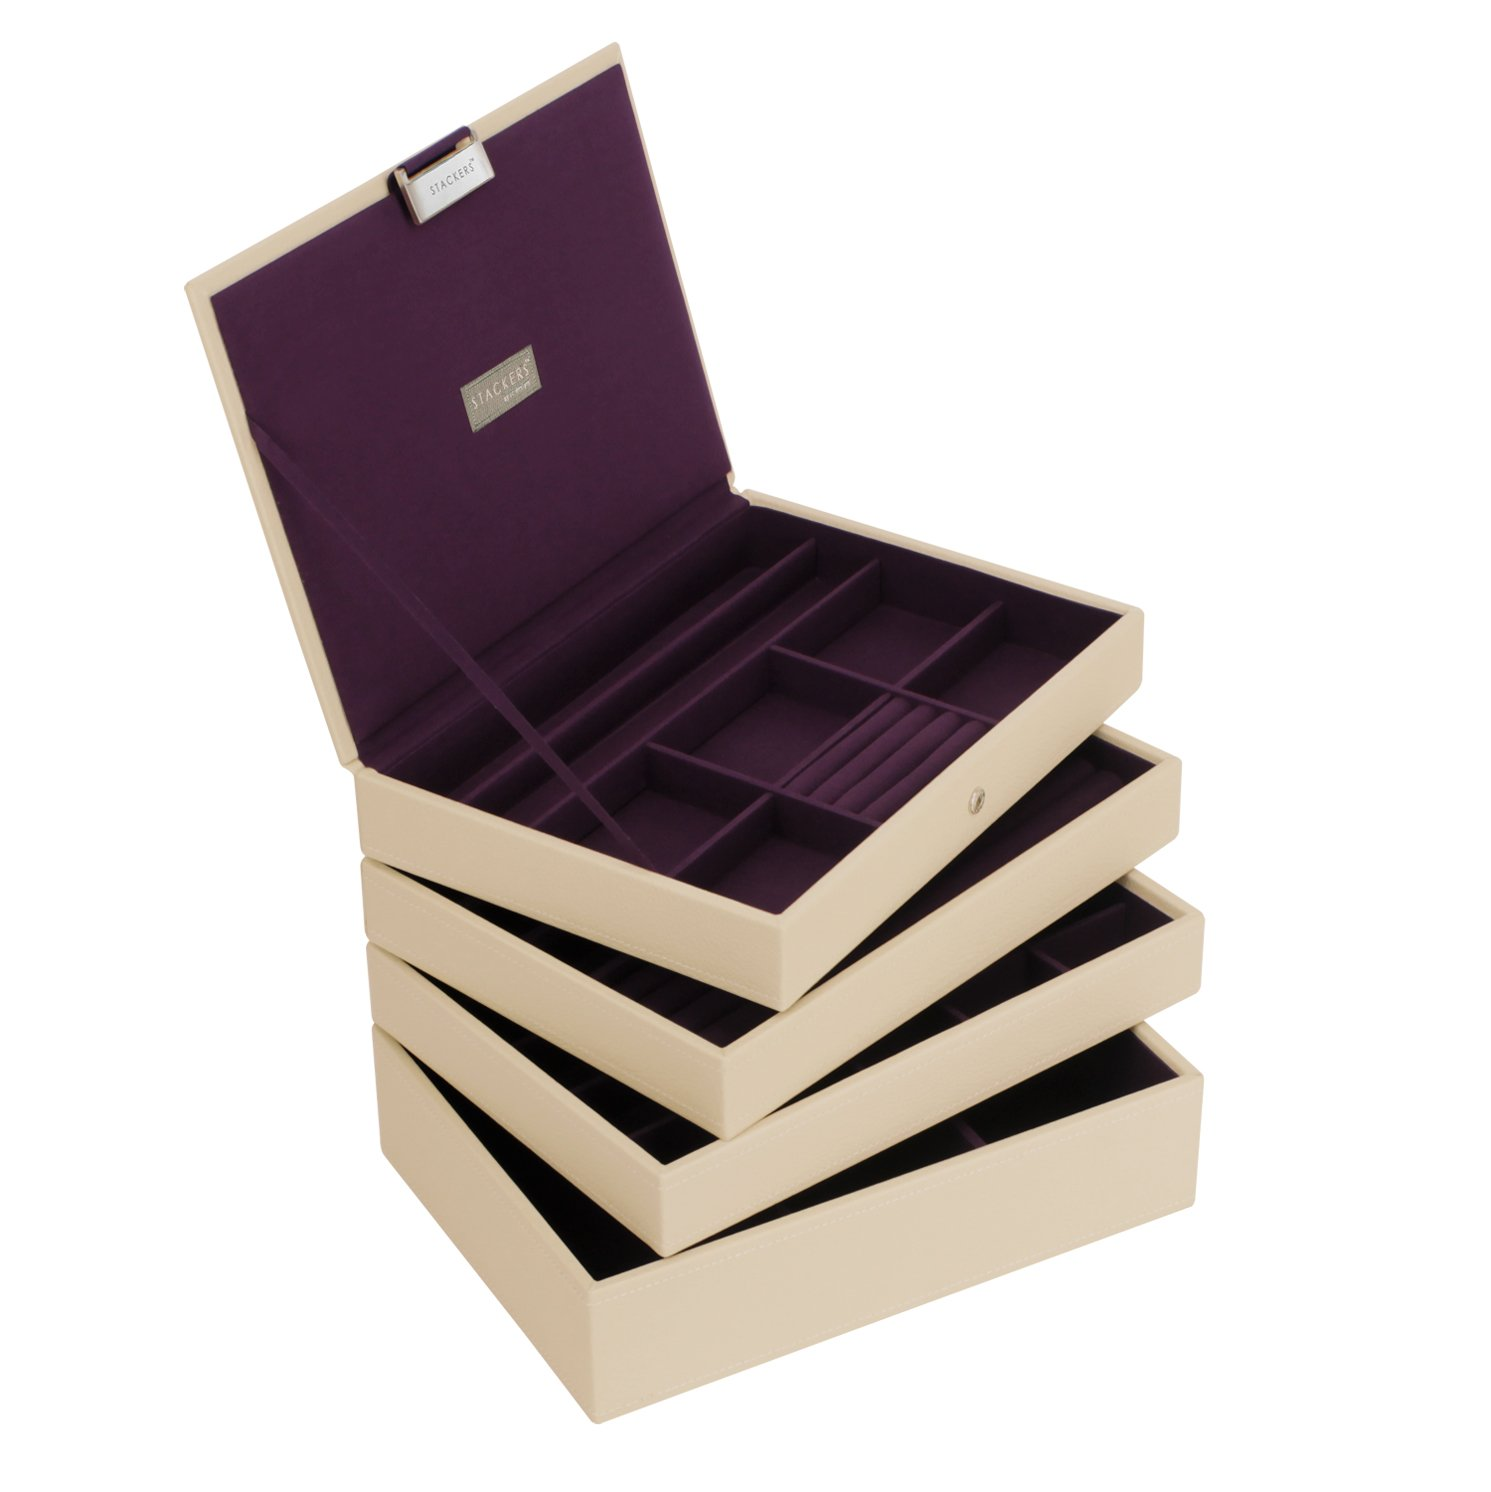 Cream STACKER Set of 4 Stacking Jewellery Box with Purple Lining STACKERS Set of 4 /'CLASSIC SIZE/'